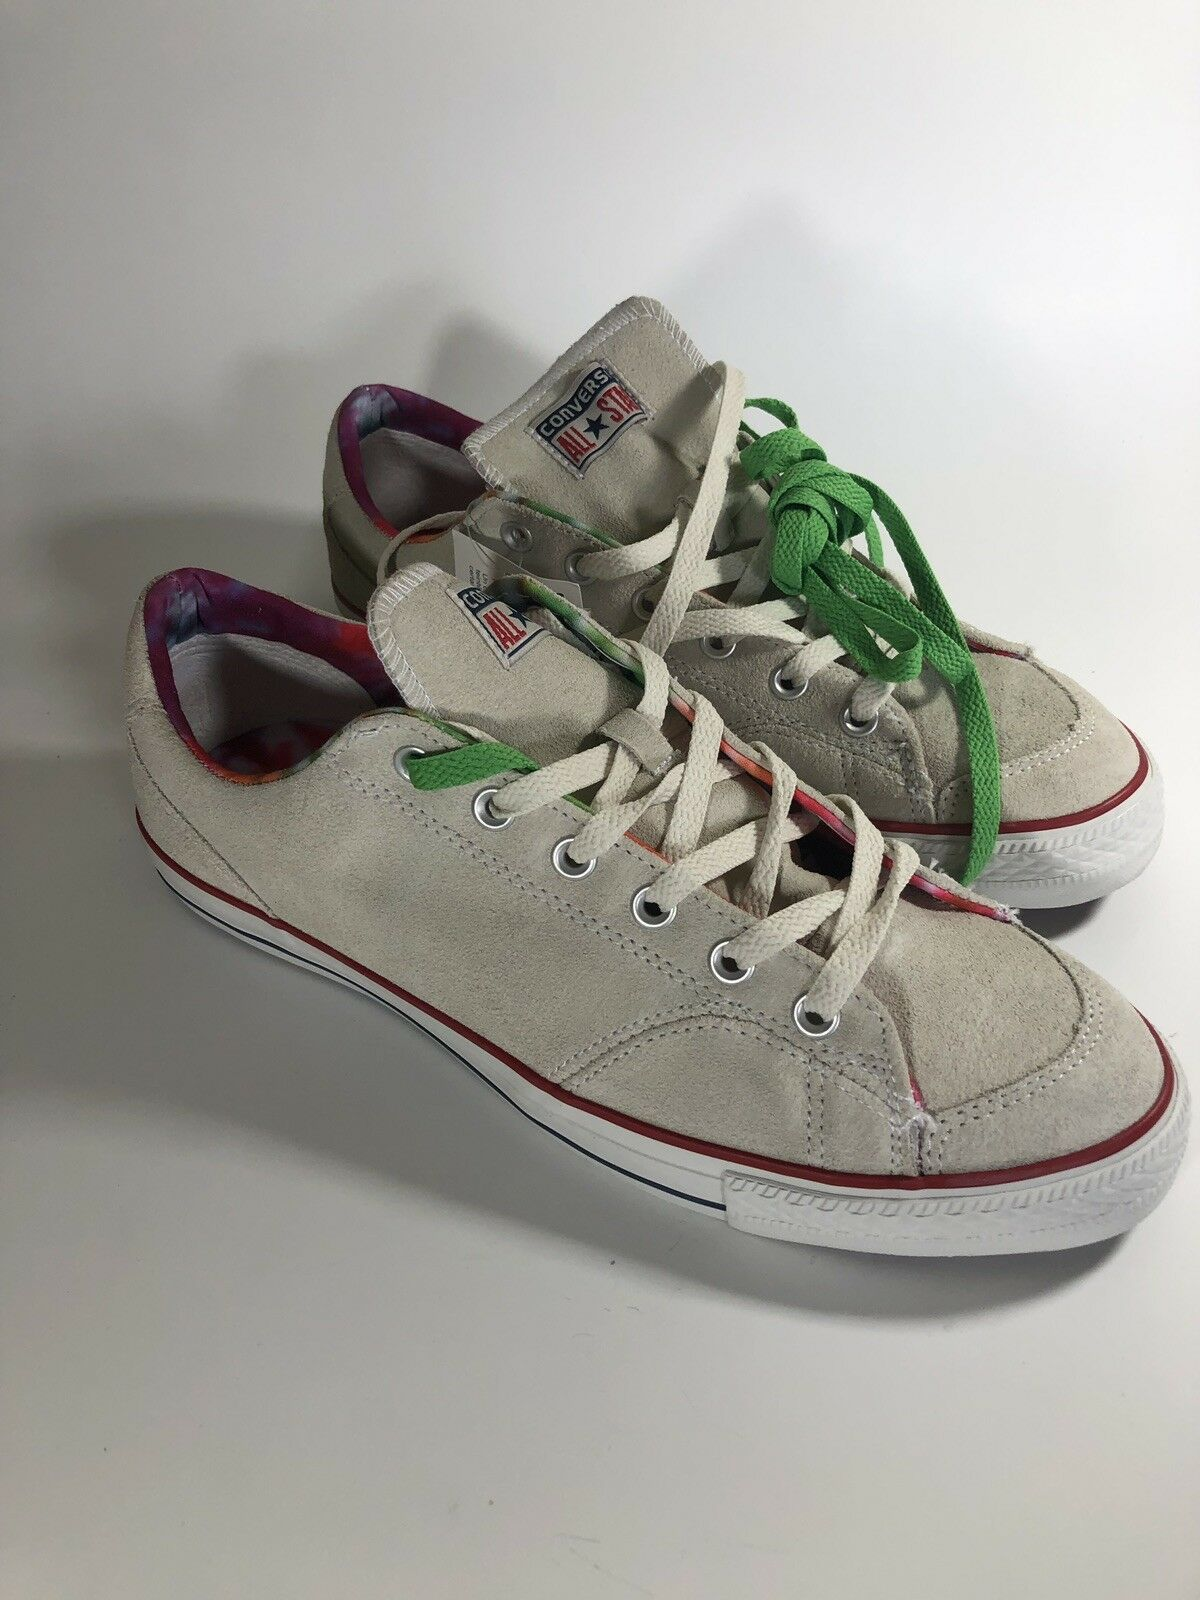 Converse Chuck Taylor All Star OX Size 11 Parchment White Low Top 136729C